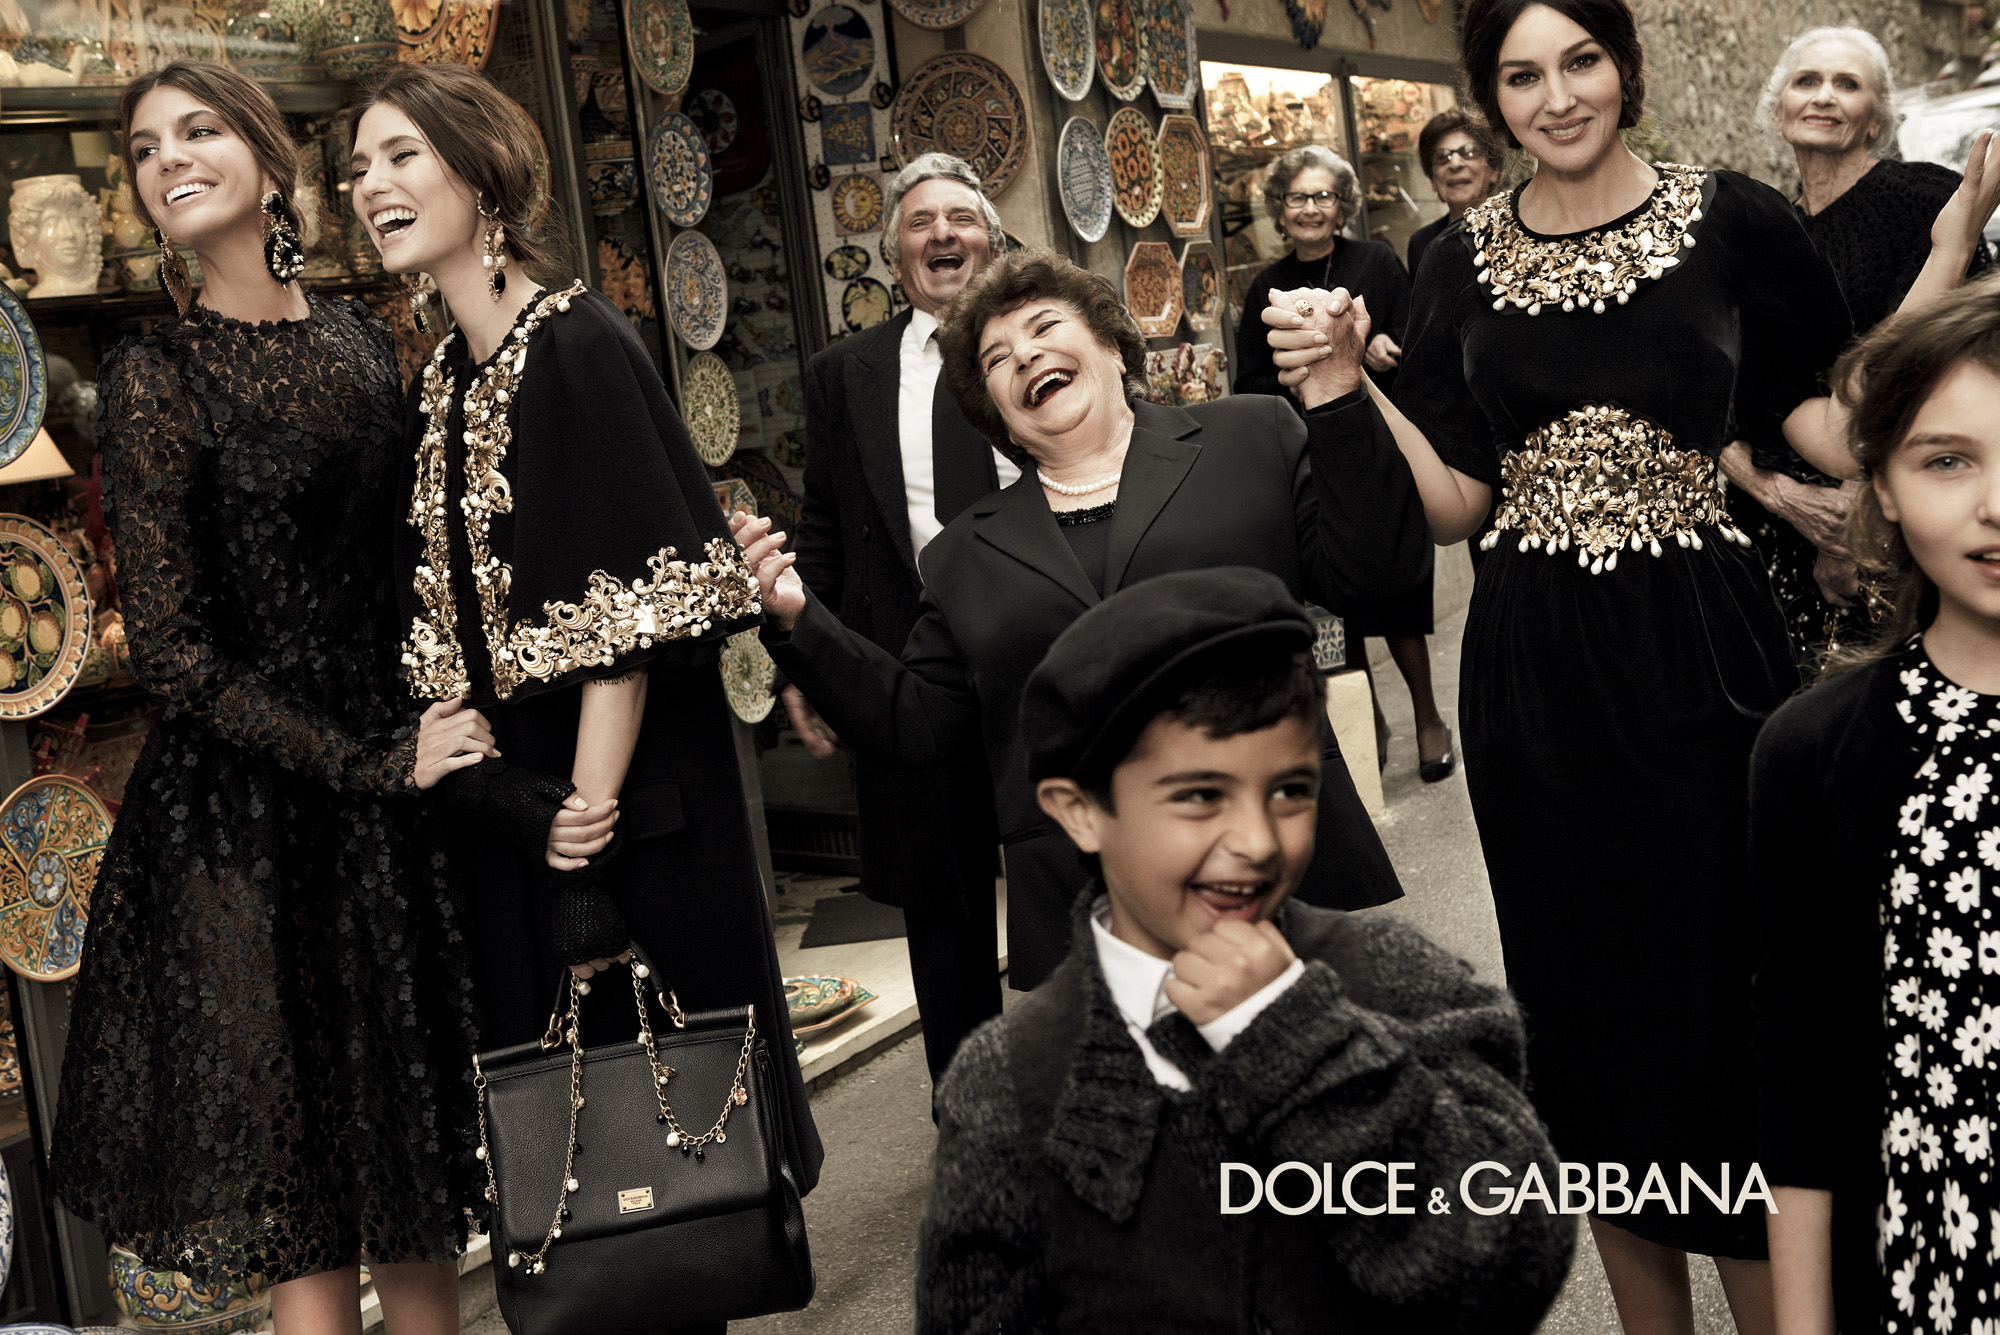 dolcegabbana-dg-fall-winter-2013-full-print-ad-campaign-italy-taormina-sicily-woman-fashion-photography-giampaolosgura-runway-womanswear-baroque-feminine-tailoring-07